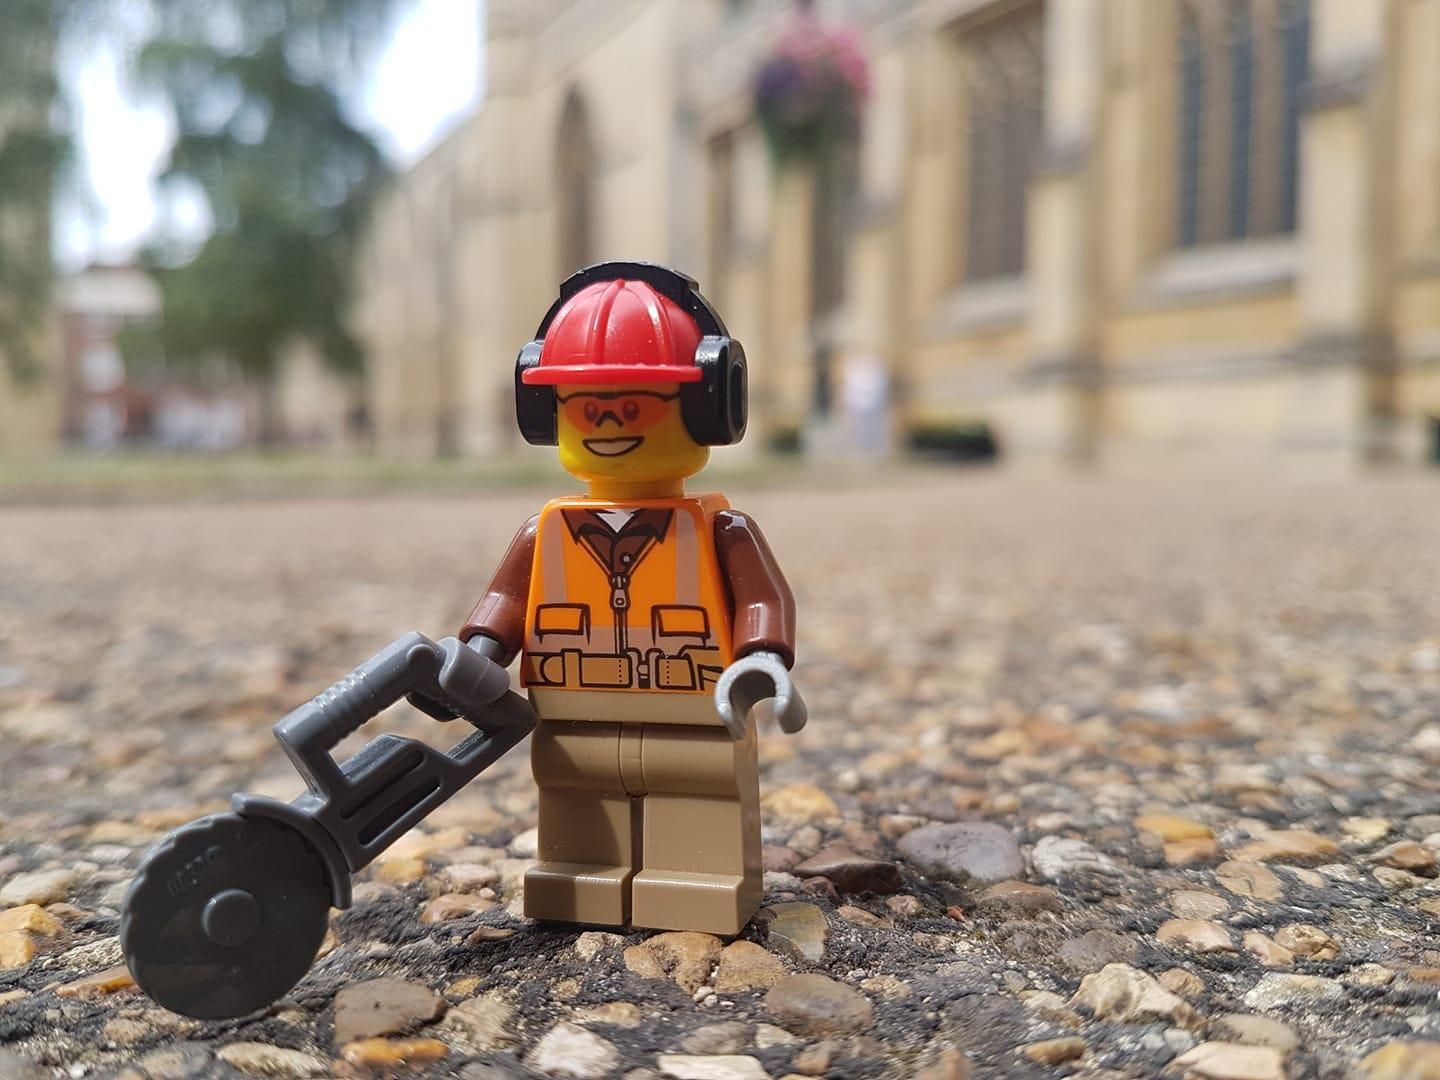 Visitors Donate to LEGO Replica Cathedral